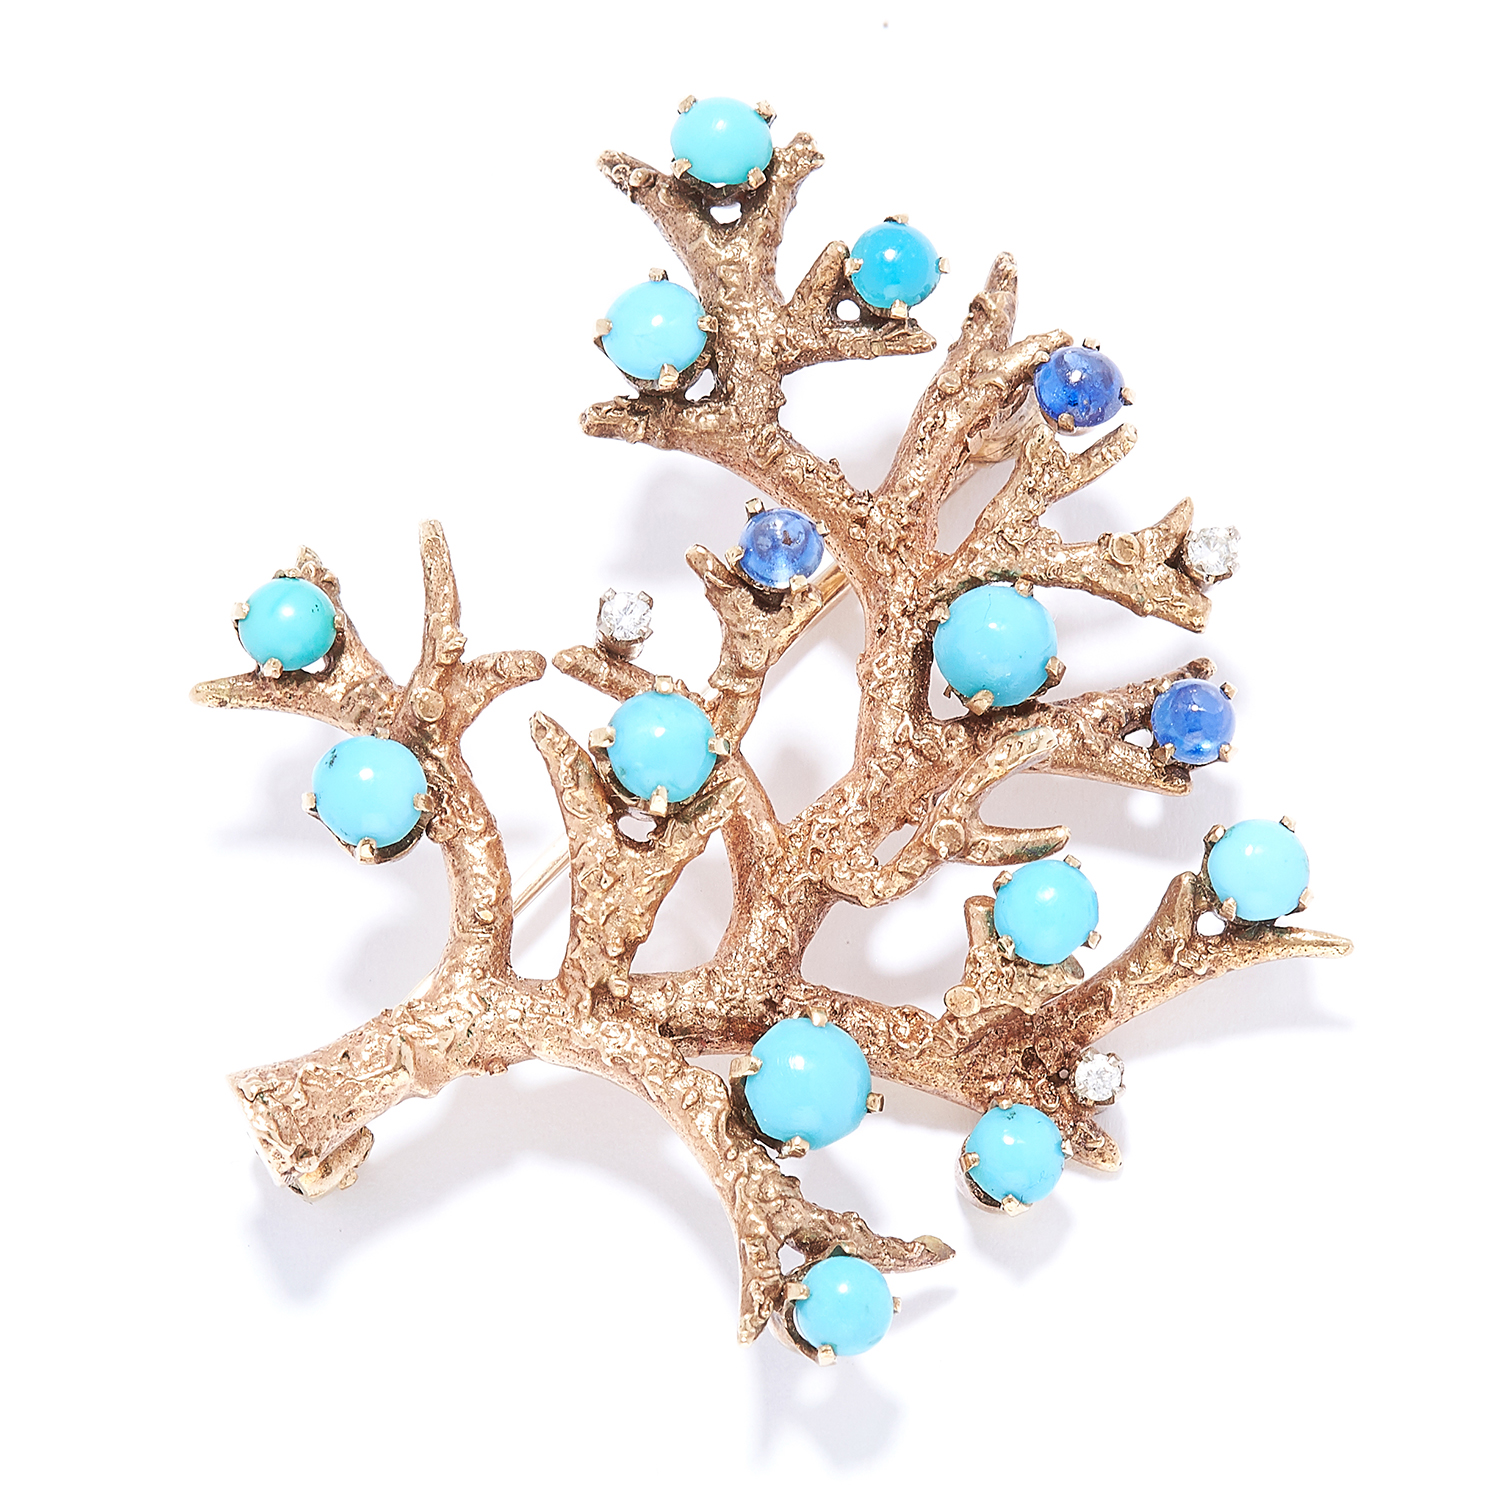 Los 56 - VINTAGE TURQUOISE, SAPPHIRE AND DIAMOND BRANCH BROOCH, H G MAUTNER, 1968 in the form of a branch set